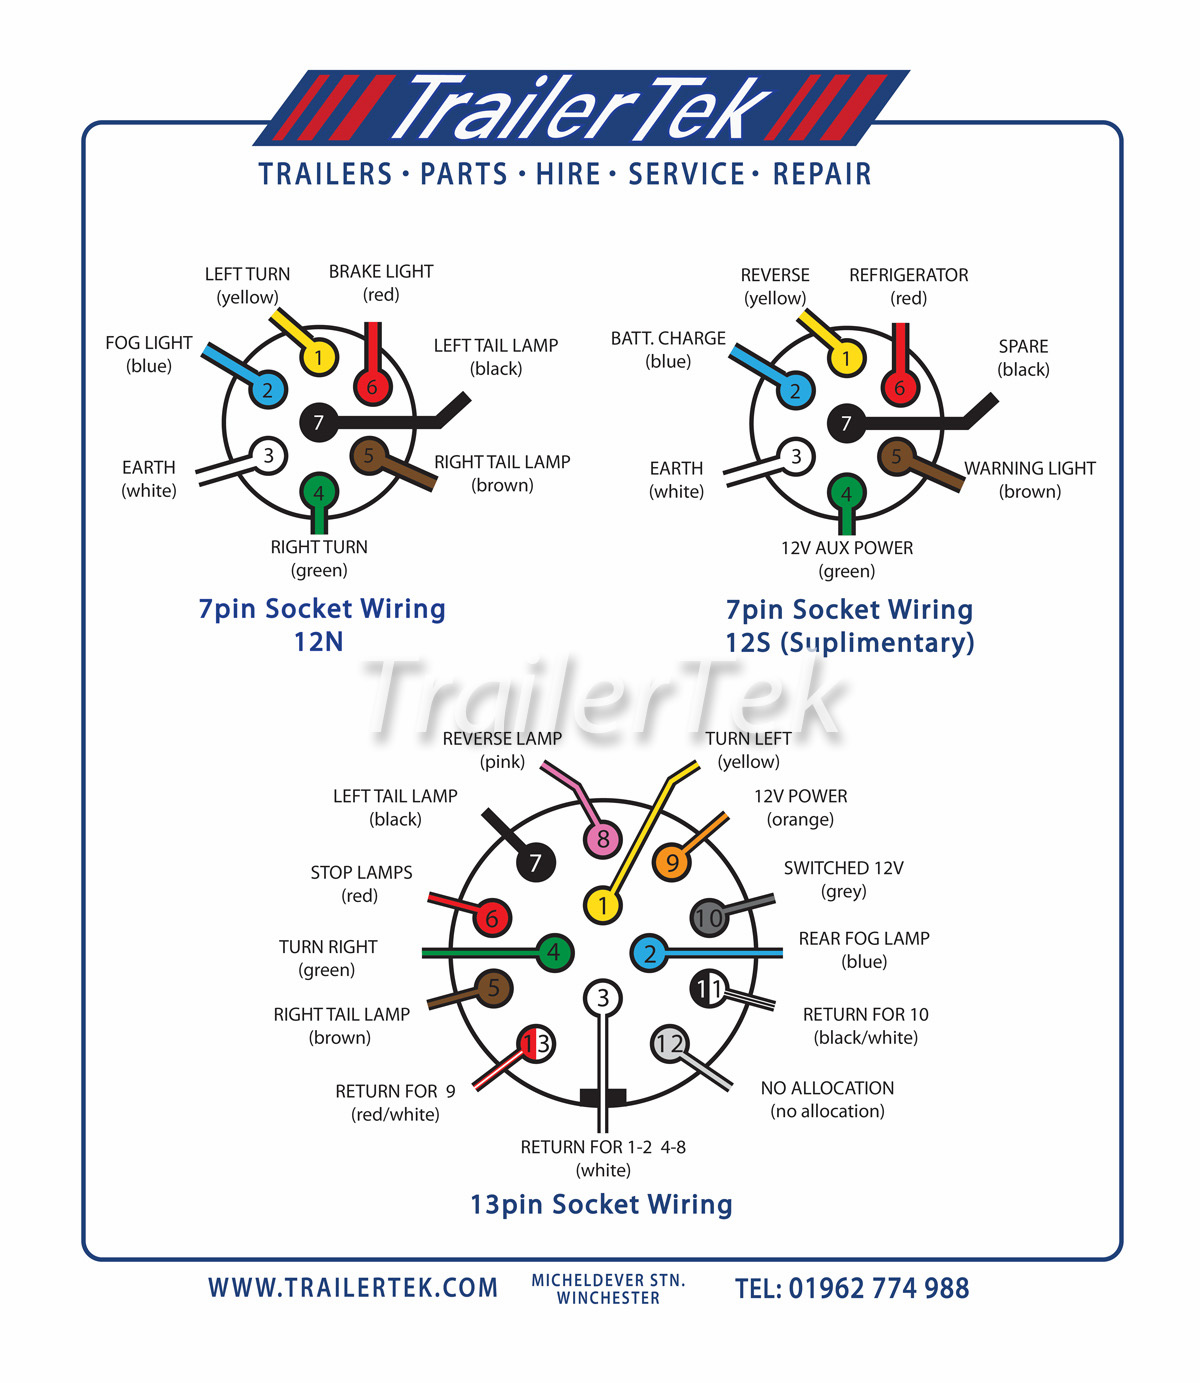 Coromal caravan wiring diagram wiring diagram database aeonhart com jayco caravan wiring diagram with amazing inspirational switched outlet wiring diagram coromal caravan wiring diagram asfbconference2016 Image collections